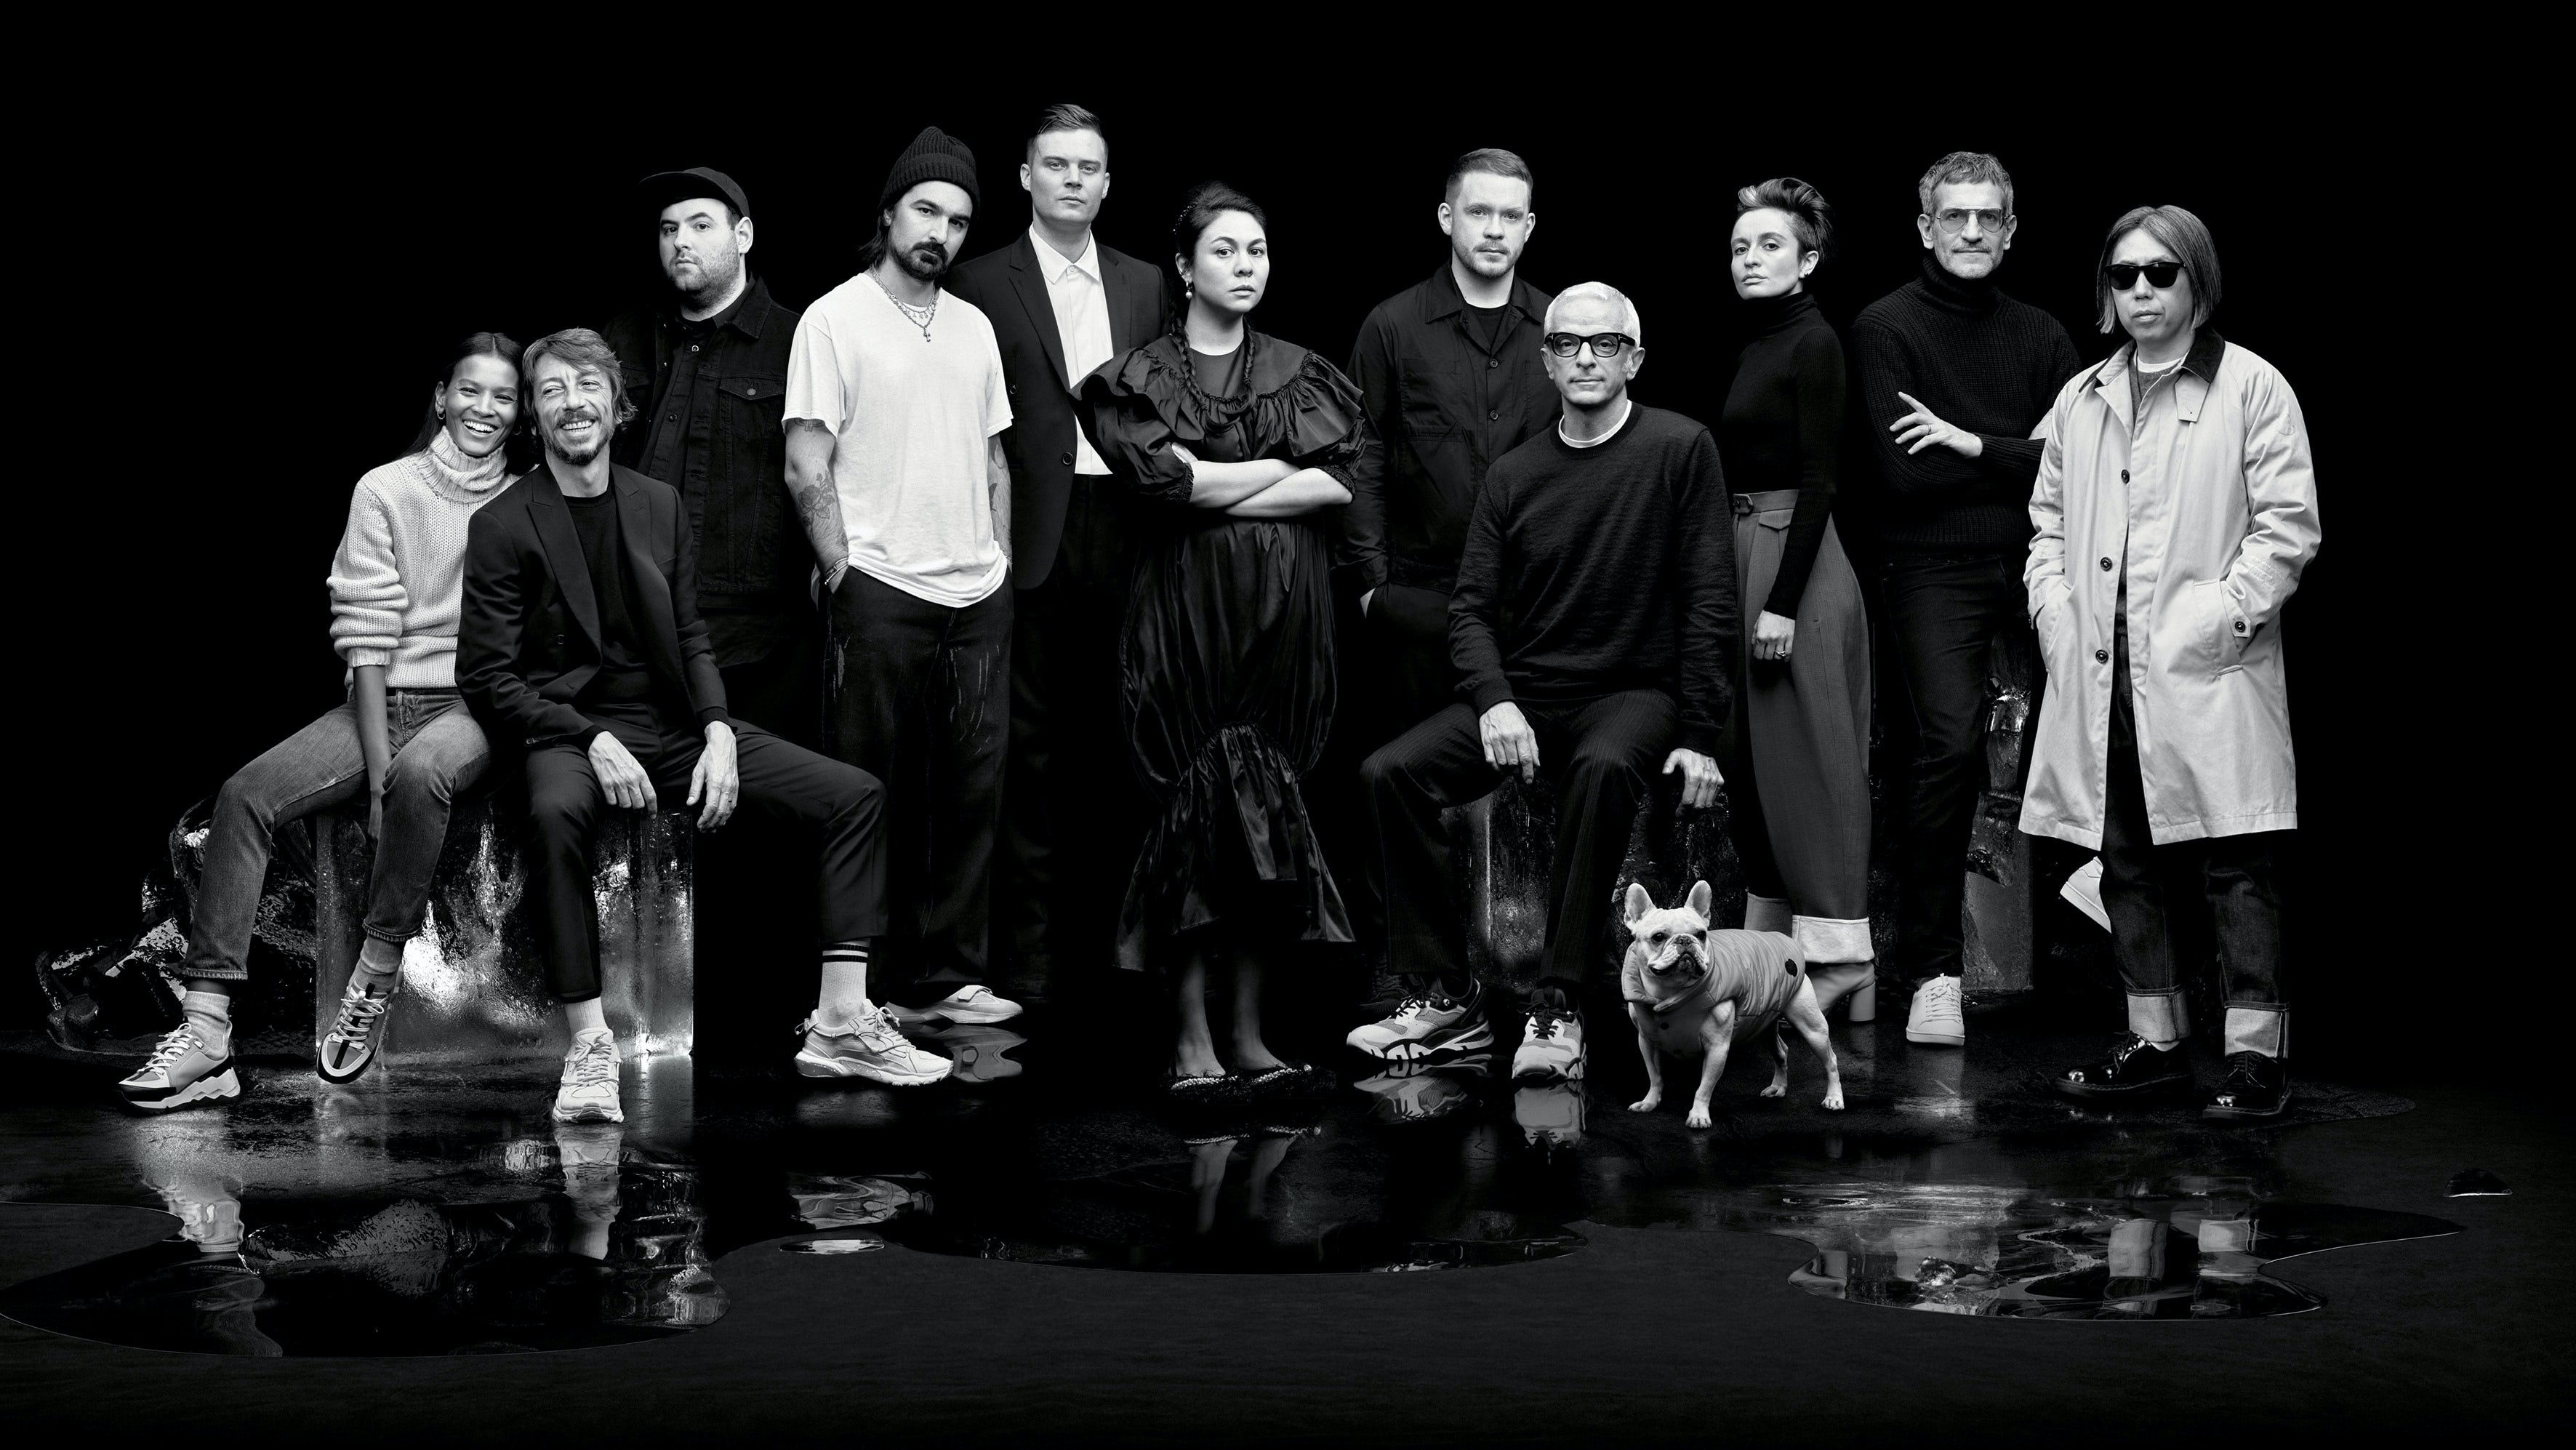 Moncler Genius collaborators for 2019: Liya Kebede, Pierpaolo Piccioli, Richard Quinn, Francesco Ragazzi, Matthew Williams, Simone Rocha, Craig Green, Sandro Mandrino, Veronica Leoni, Sergio Zambon and Hiroshi Fujiwara | Source: Thomas Lohr for Moncler